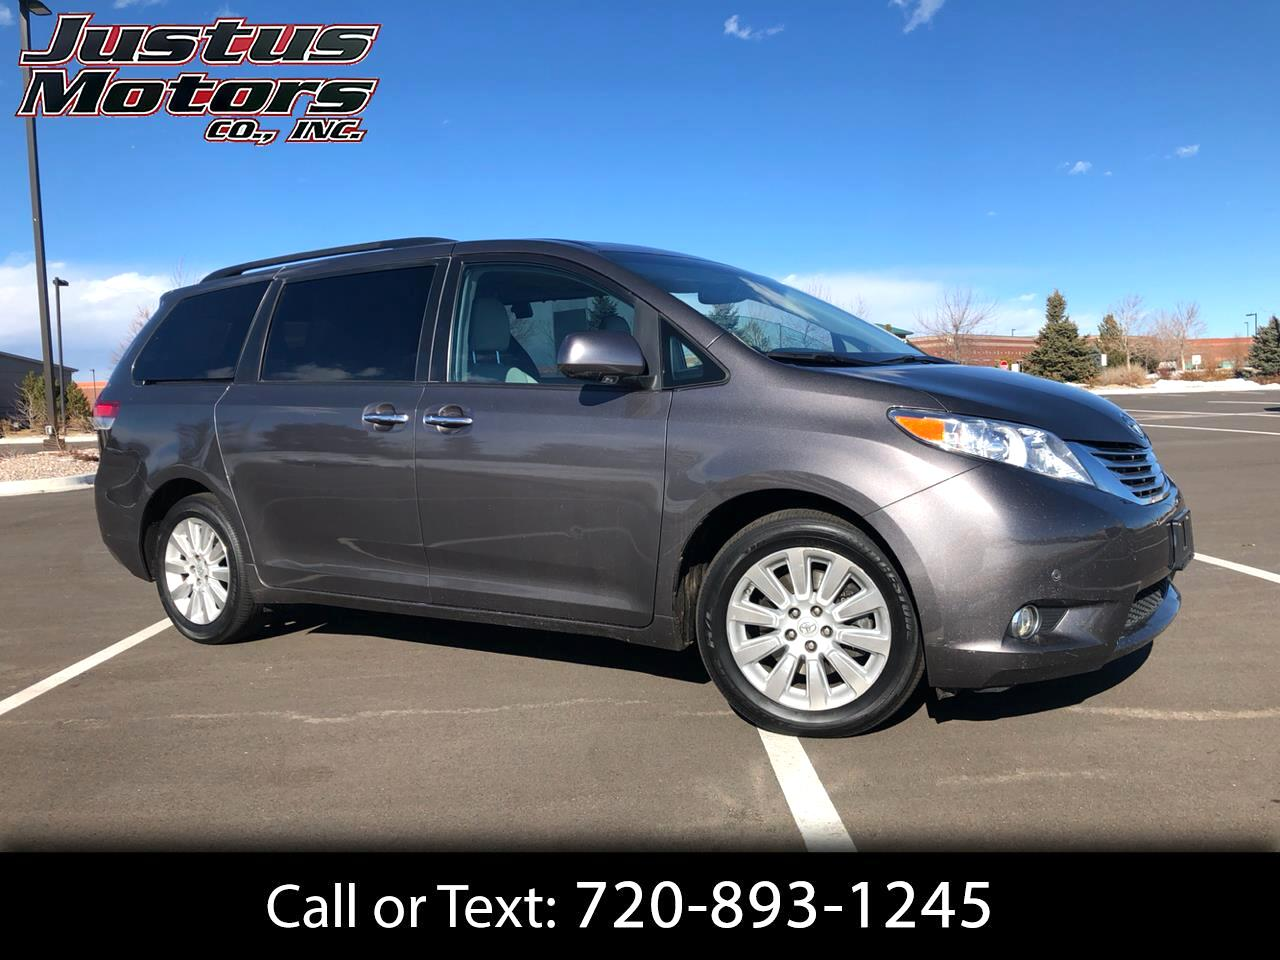 2012 Toyota Sienna 5dr XLE Limited AWD (Natl)